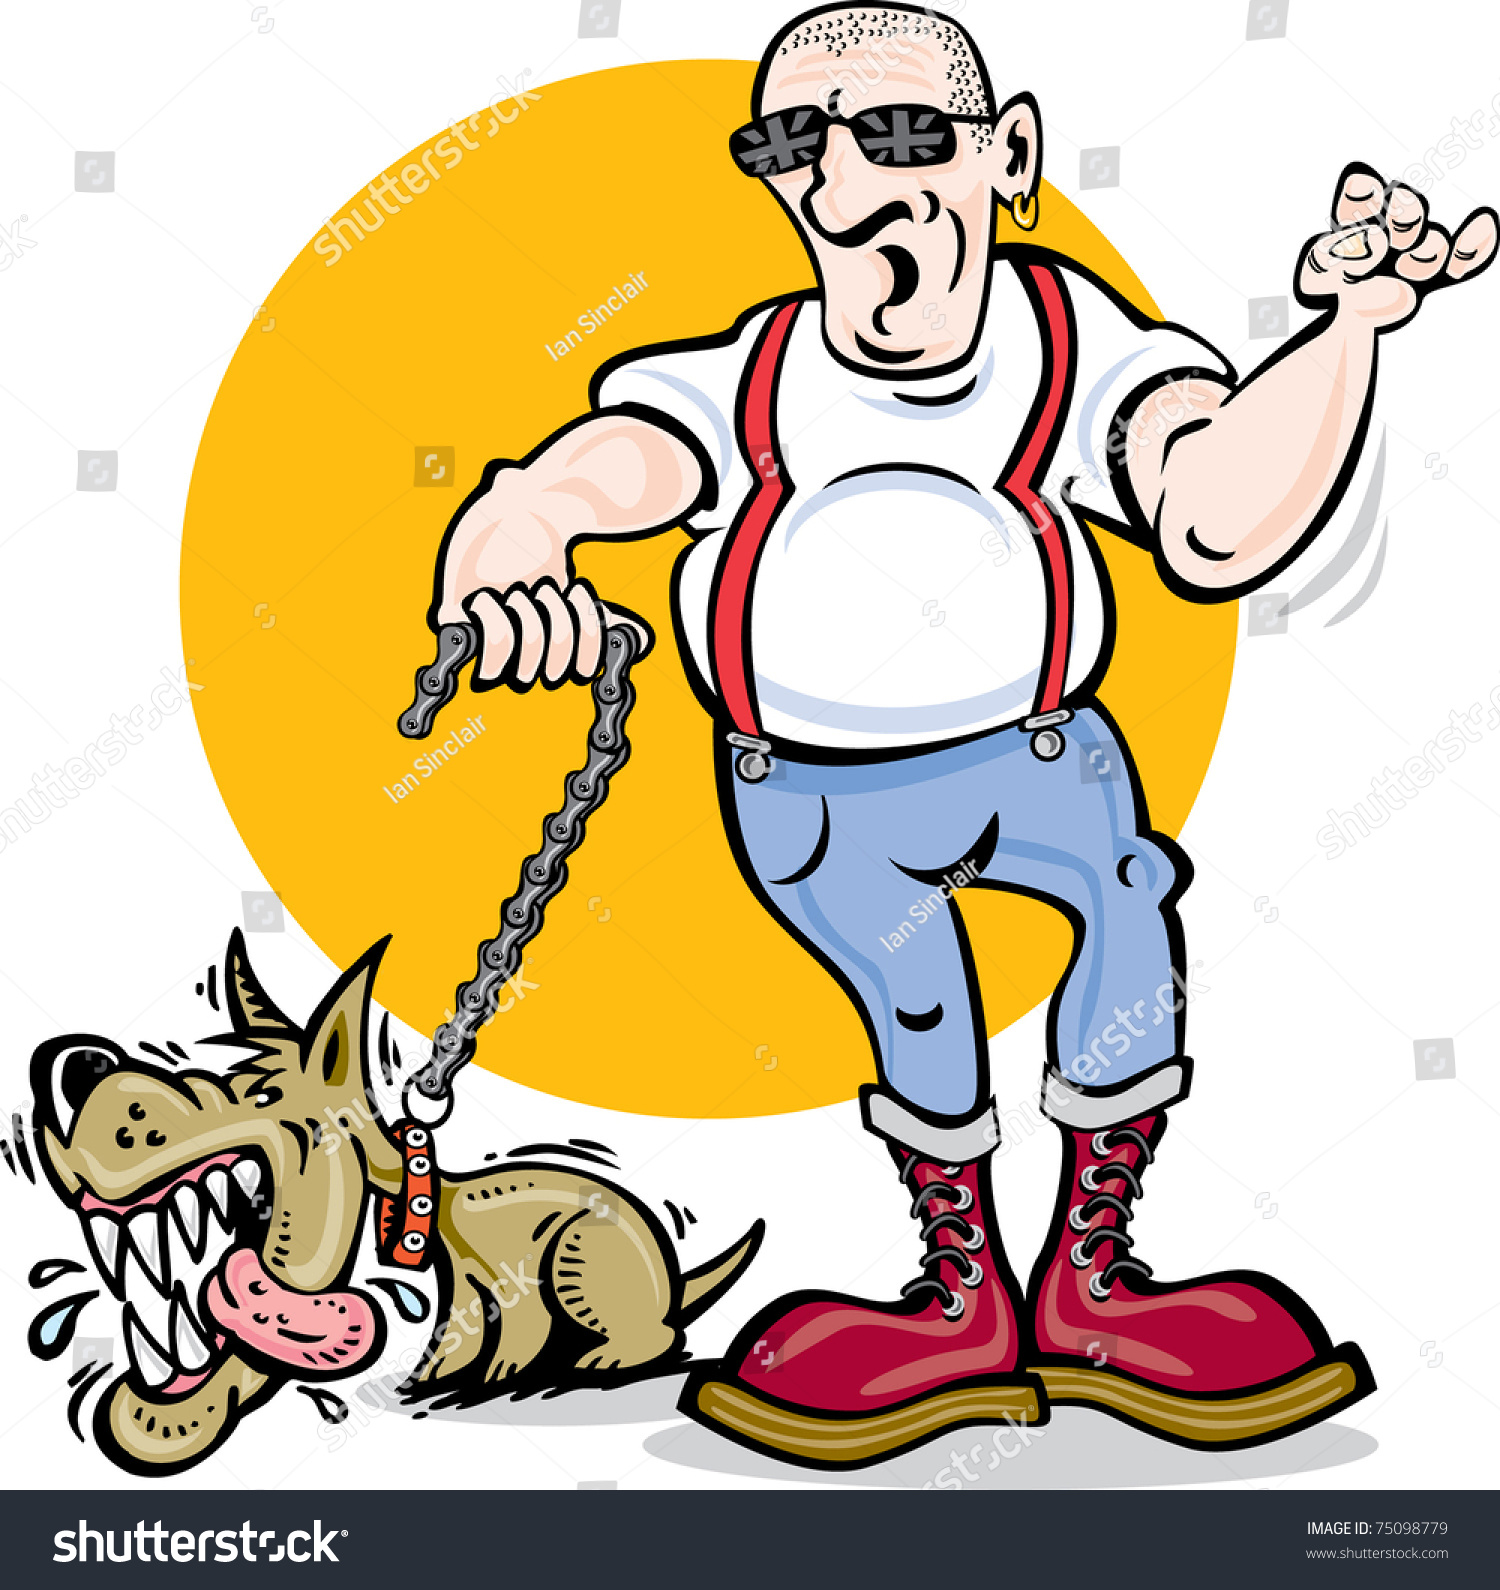 Cartoon dog stock photos images amp pictures shutterstock - Cartoon Vector Of Skinhead And Mad Dog Skinhead Dog